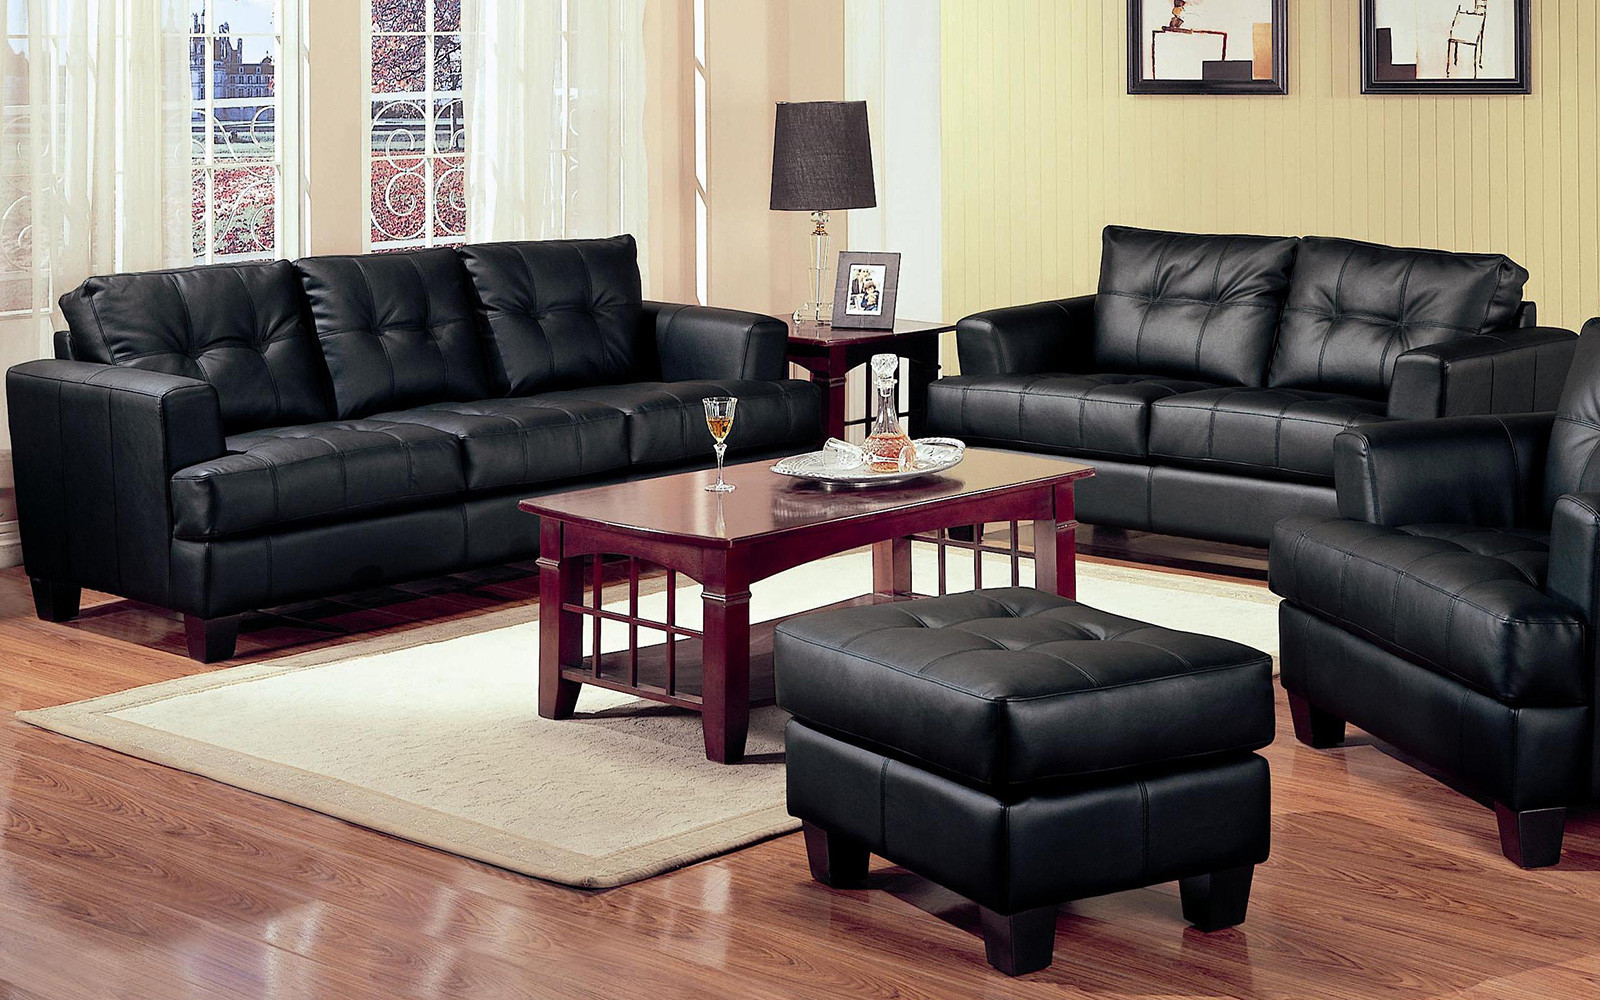 2 Piece Modern Black Bonded Leather Sofa And Loveseat Livingroom Set Part 40